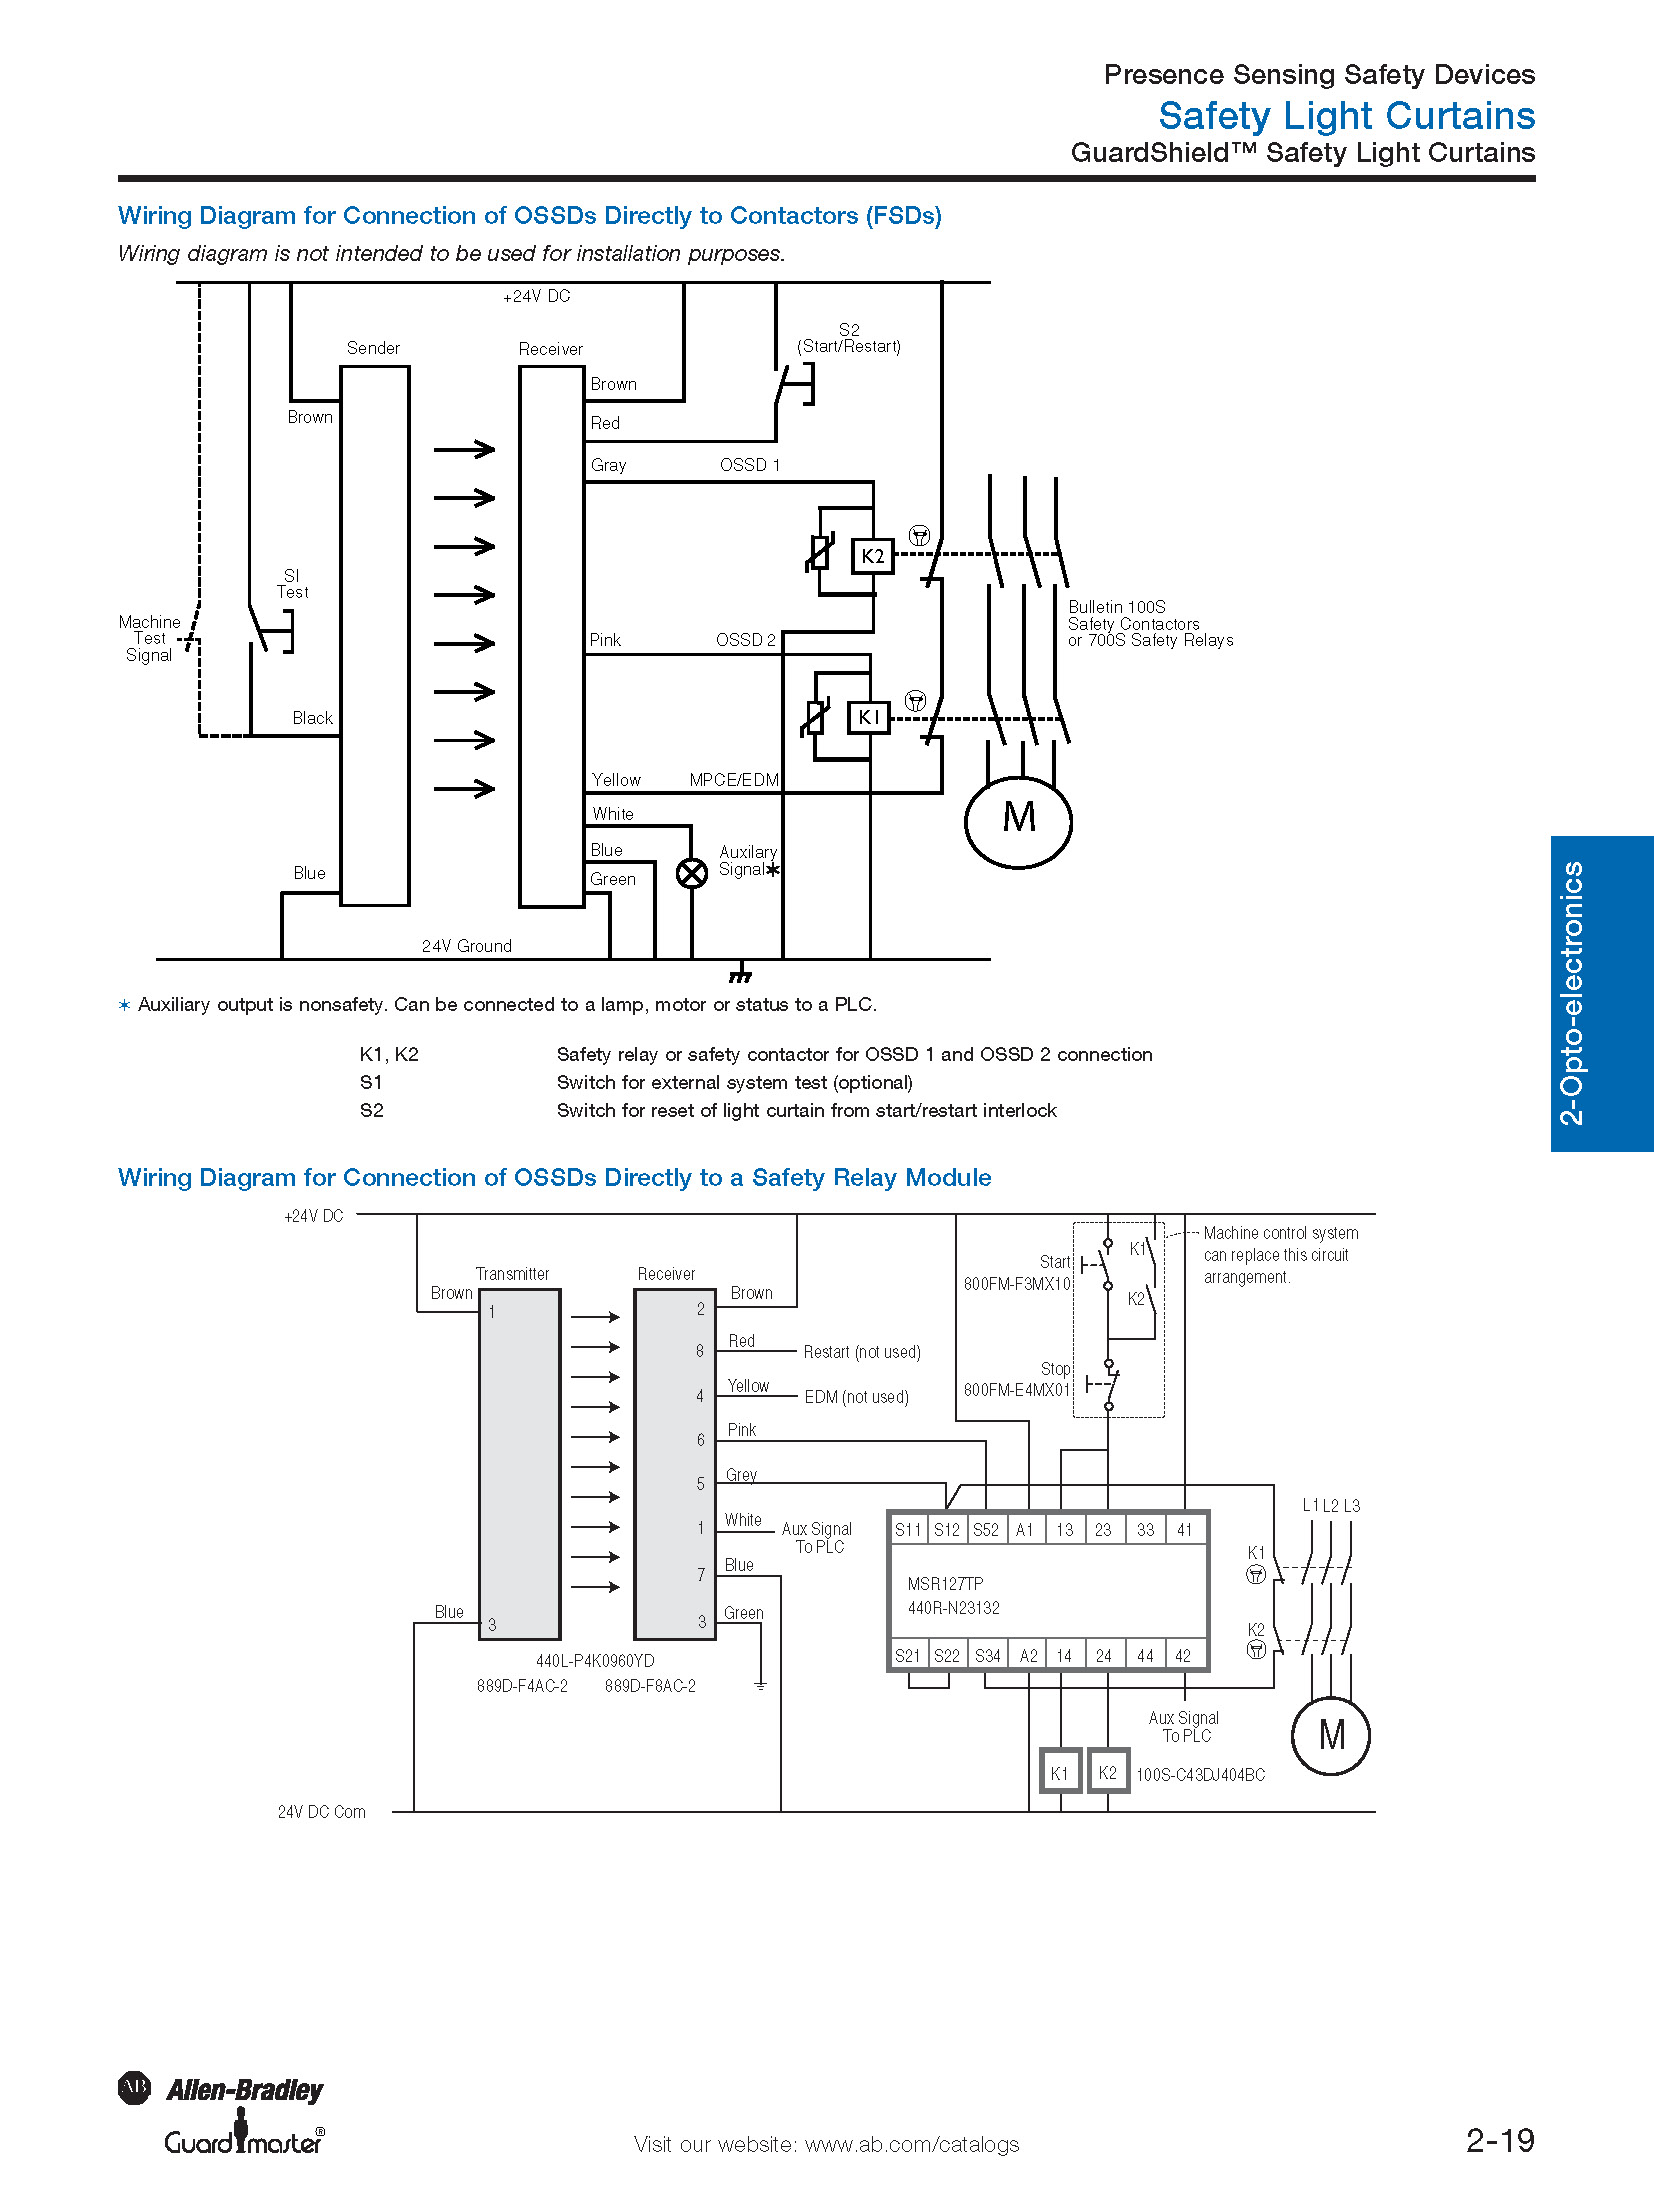 allen bradley safety wiring diagrams. Black Bedroom Furniture Sets. Home Design Ideas